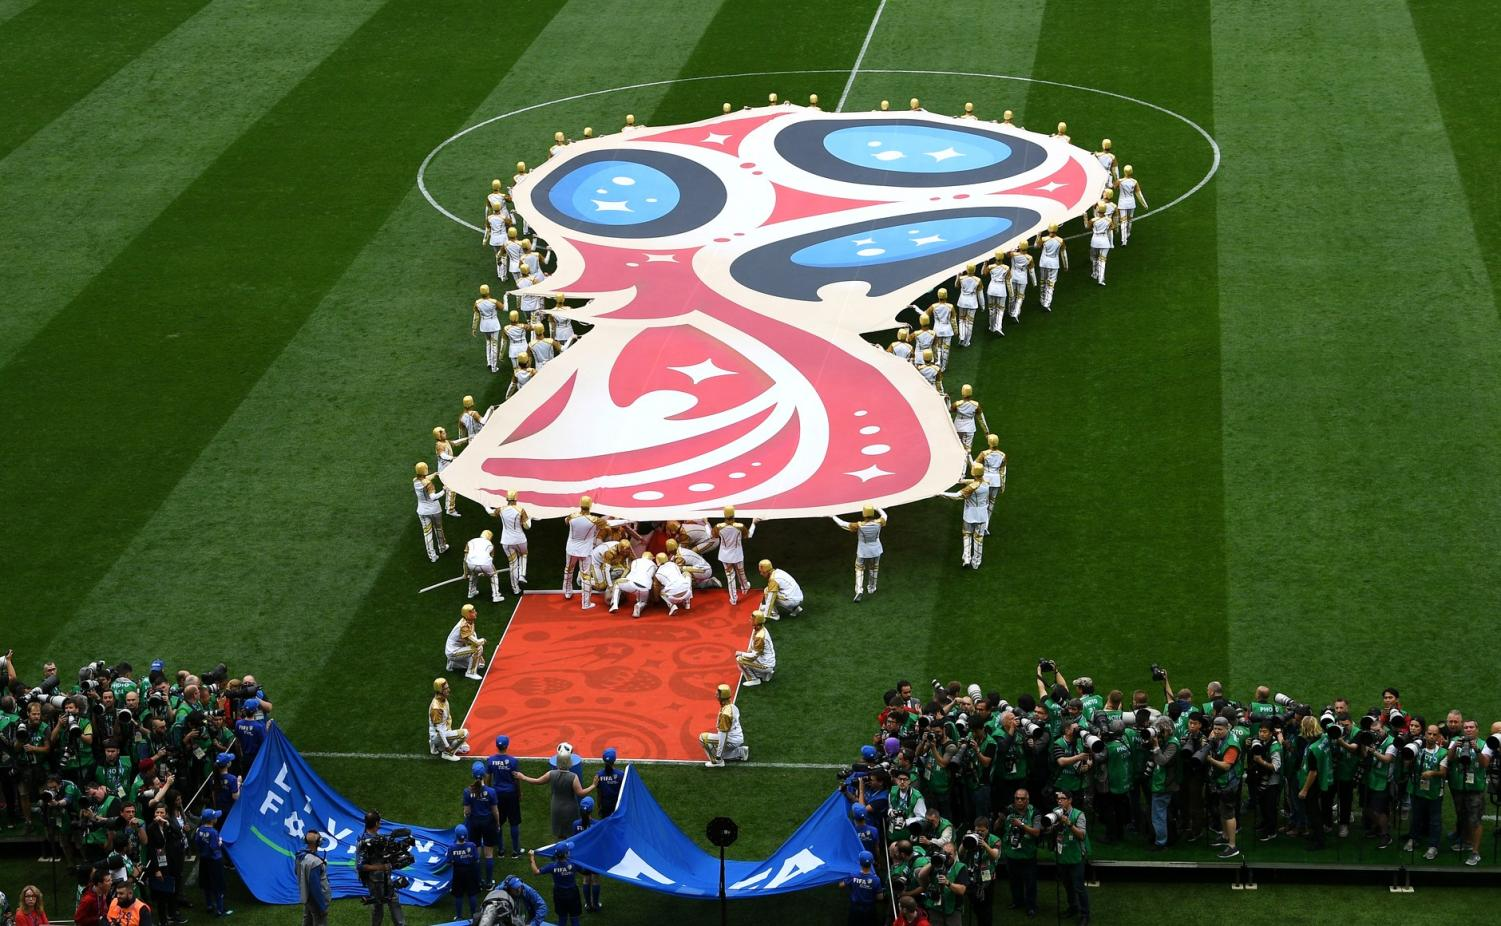 Image from the 2018 FIFA World Cup Opening Ceremony.